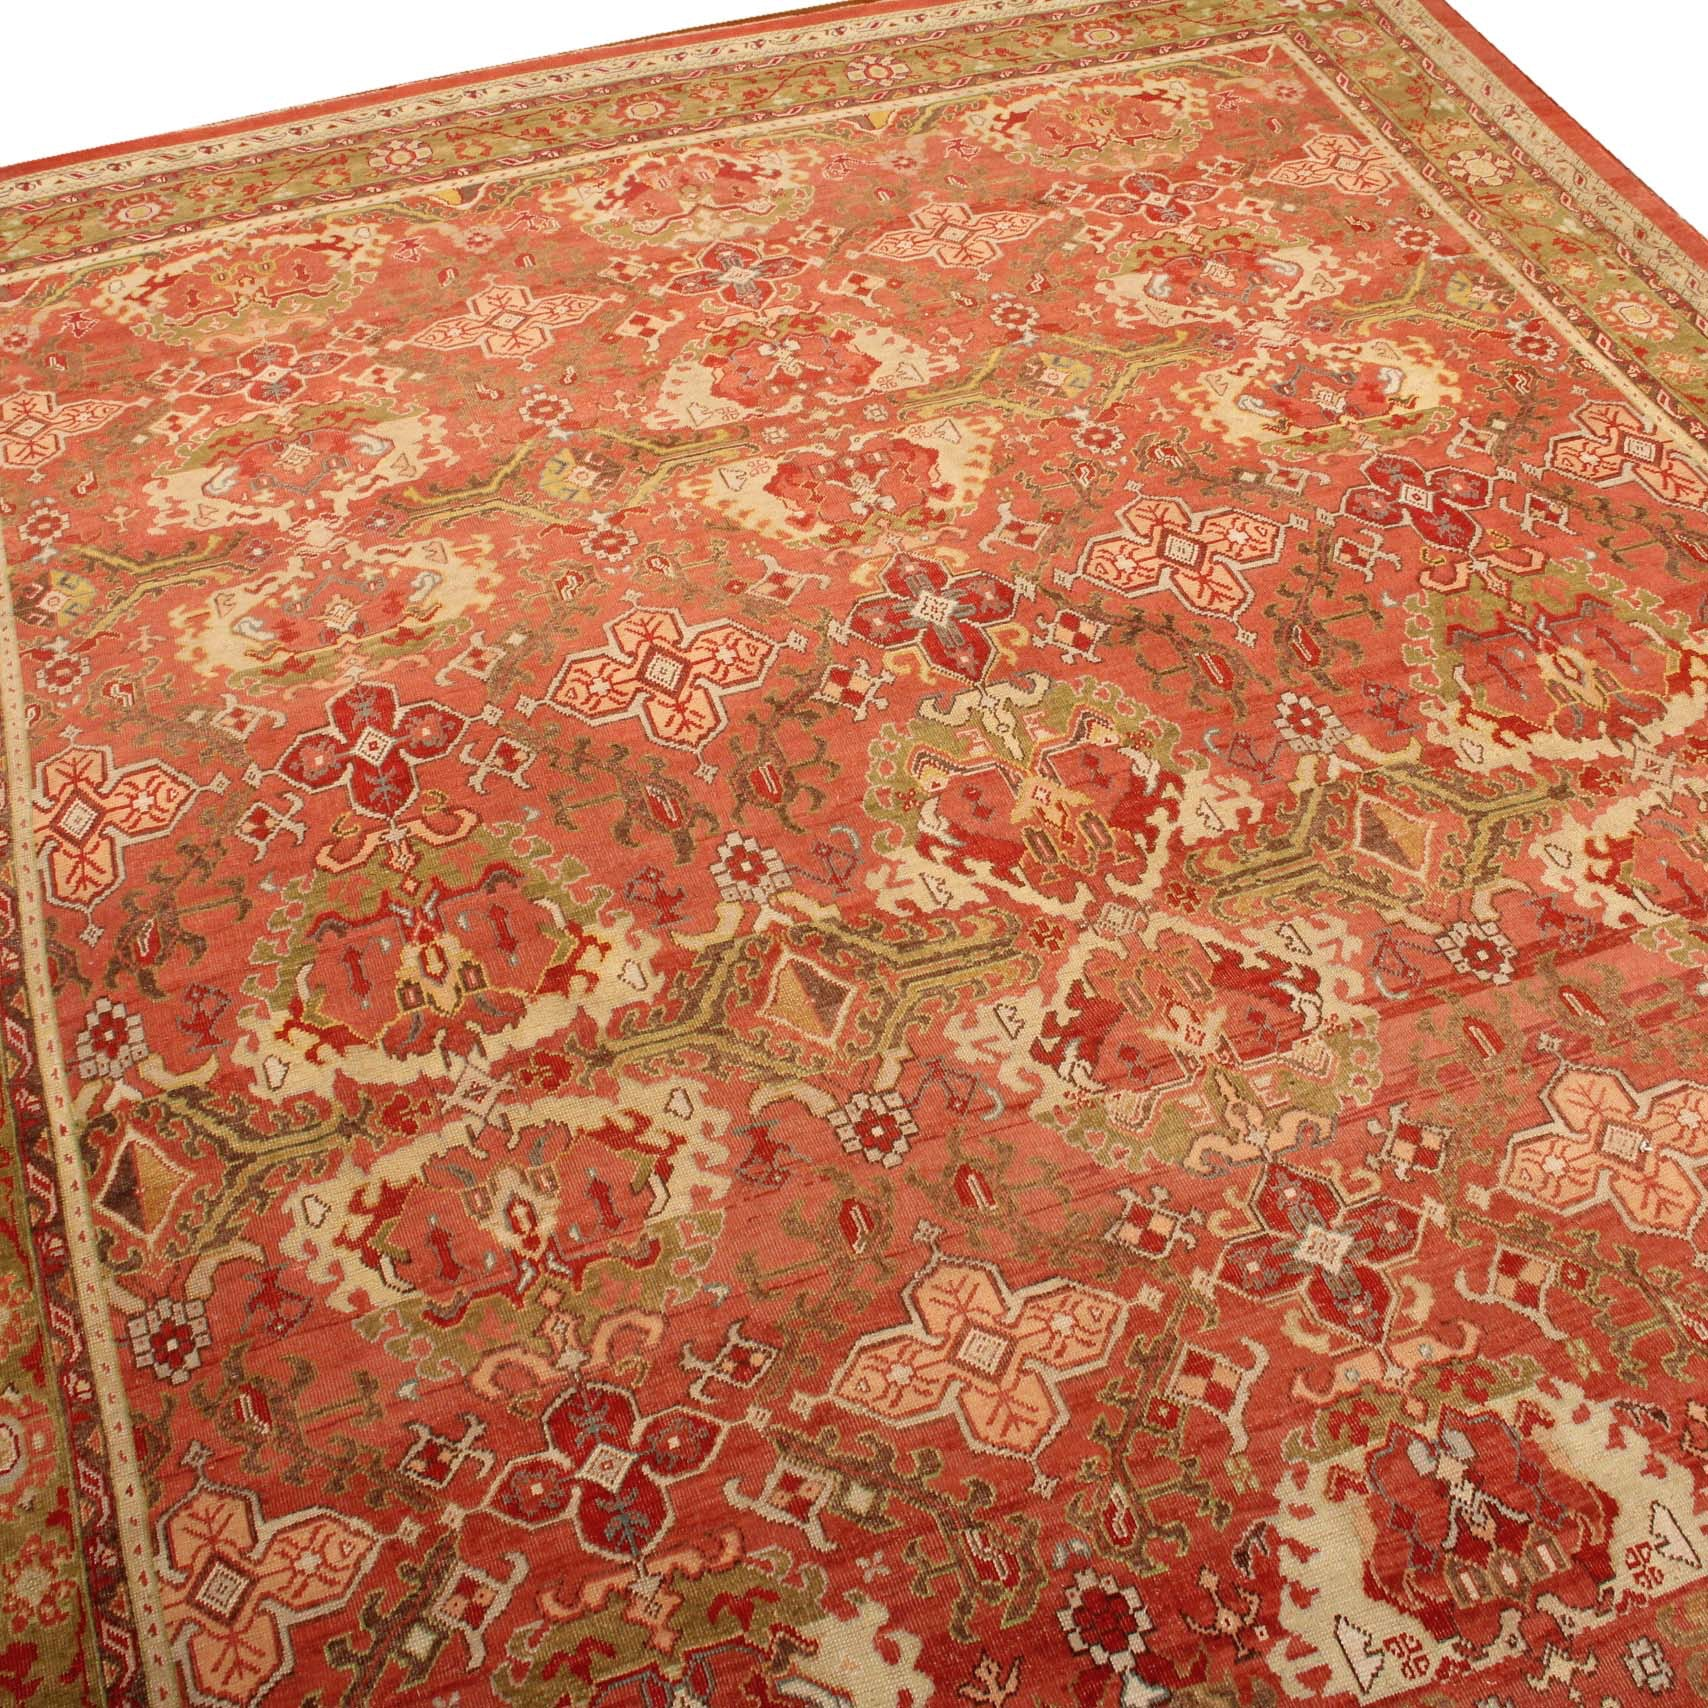 Handknotted Room-Sized Egyptian Oushak Rug